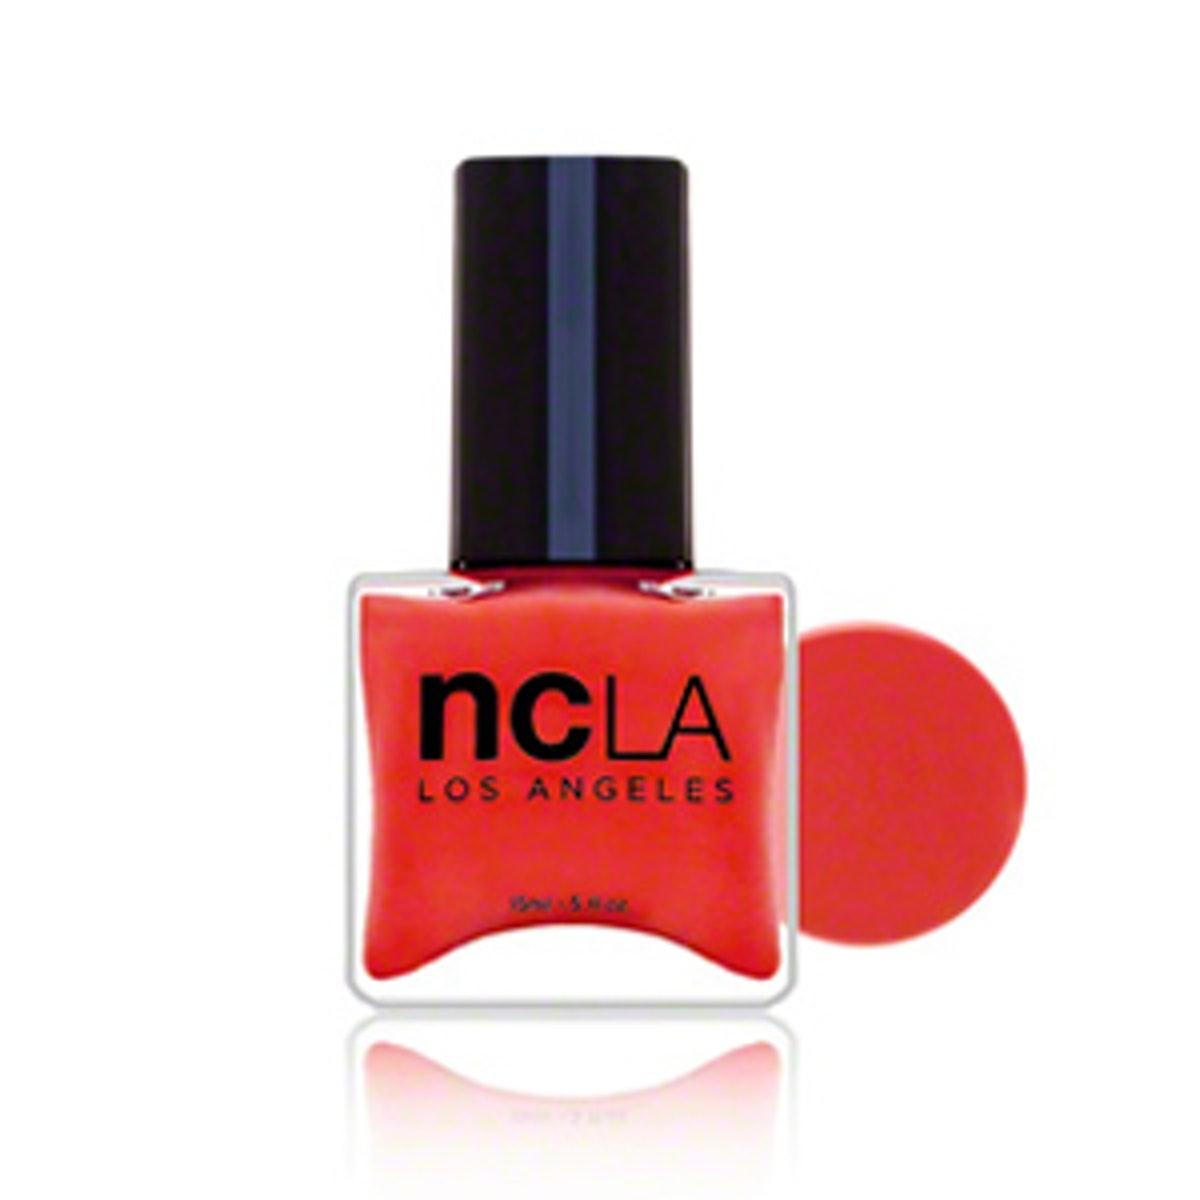 Nail Lacquer in I'm With the Band